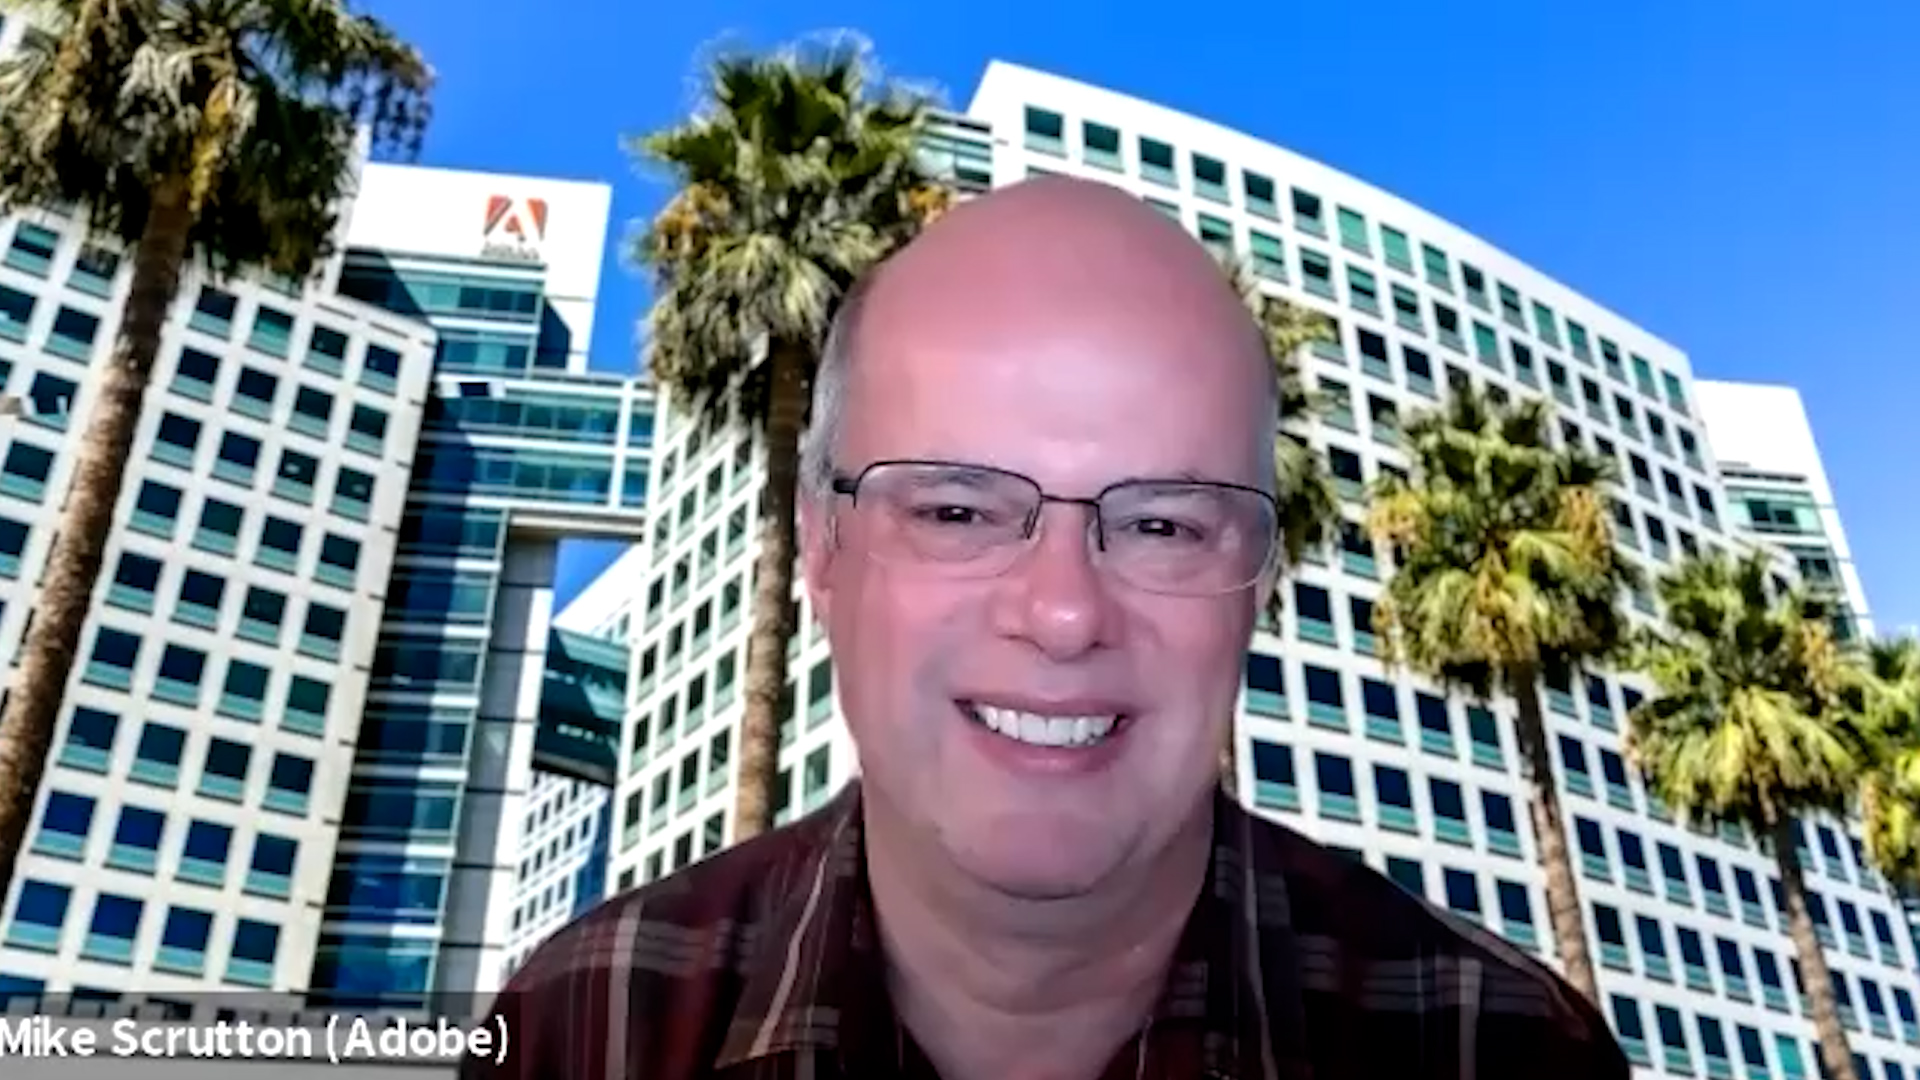 Adobe's Mike Scrutton Discusses Print Redefined